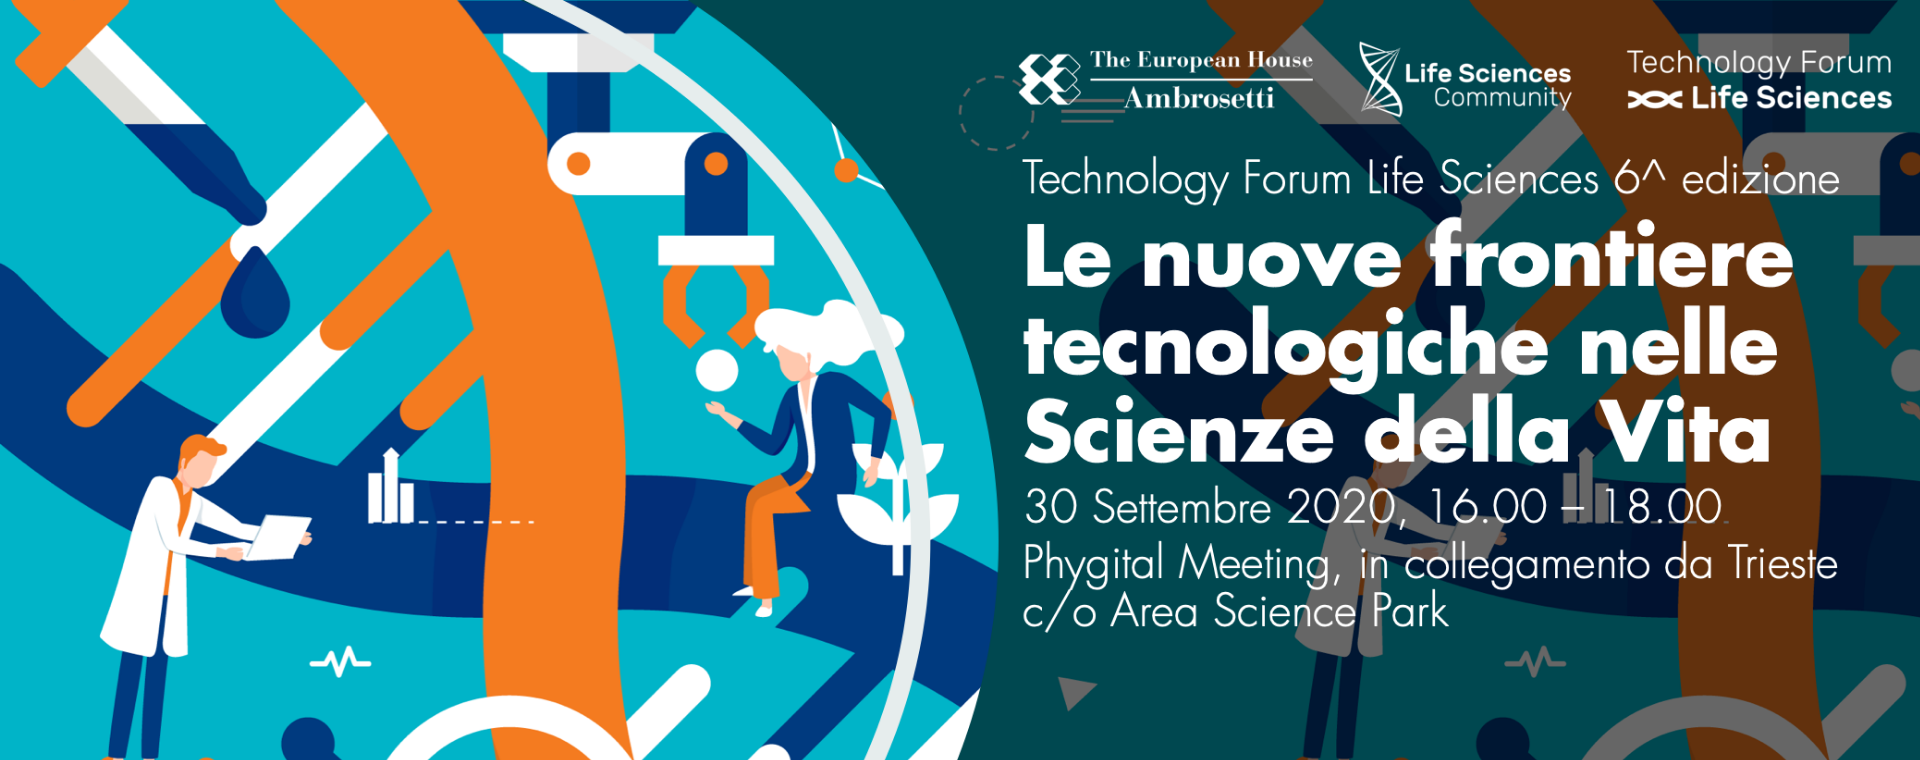 Il Technology Forum Life Sciences fa tappa in Area Science Park